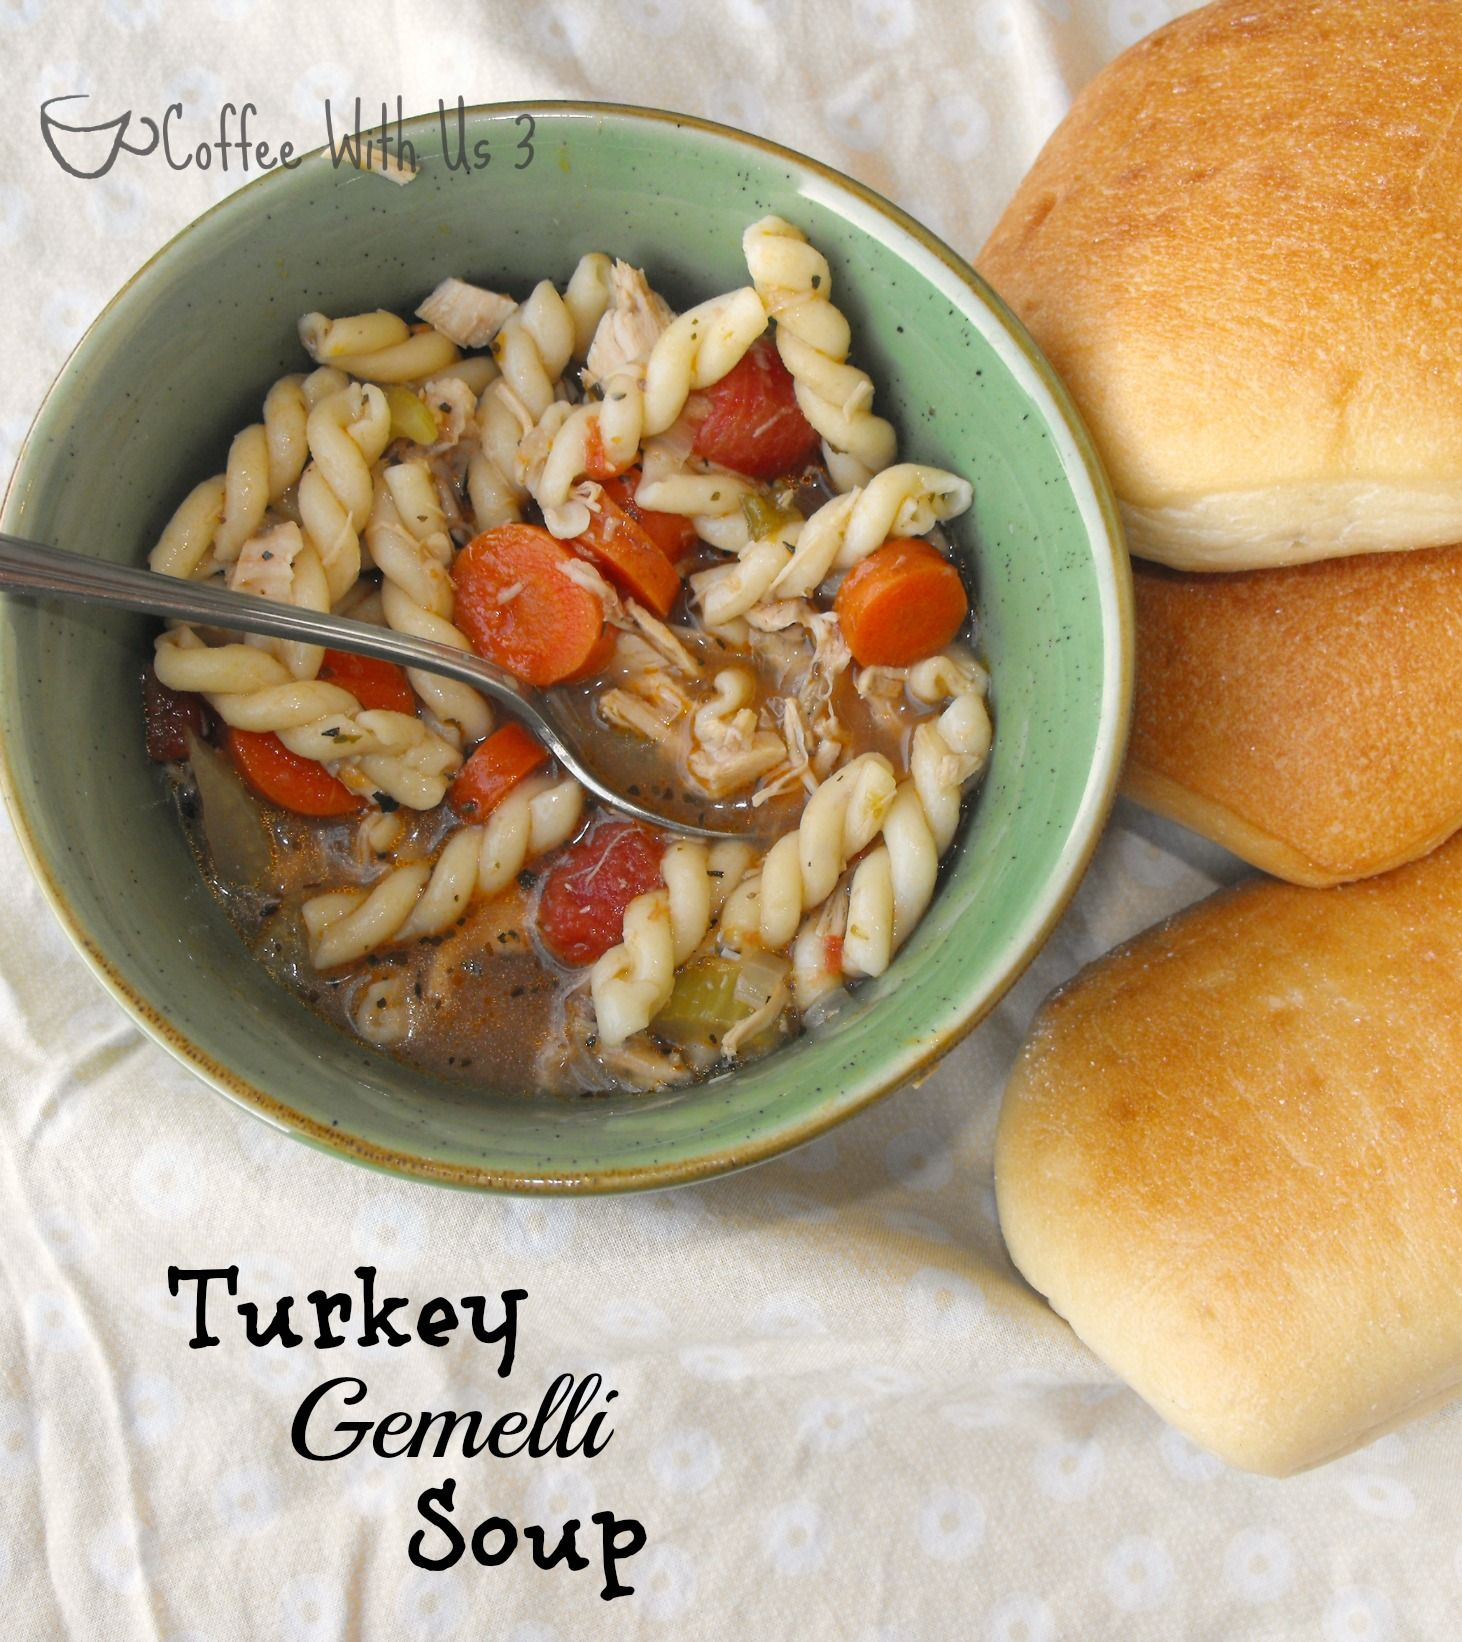 This hearty Turkey Gemelli Soup is sure to please during the cold winter months!